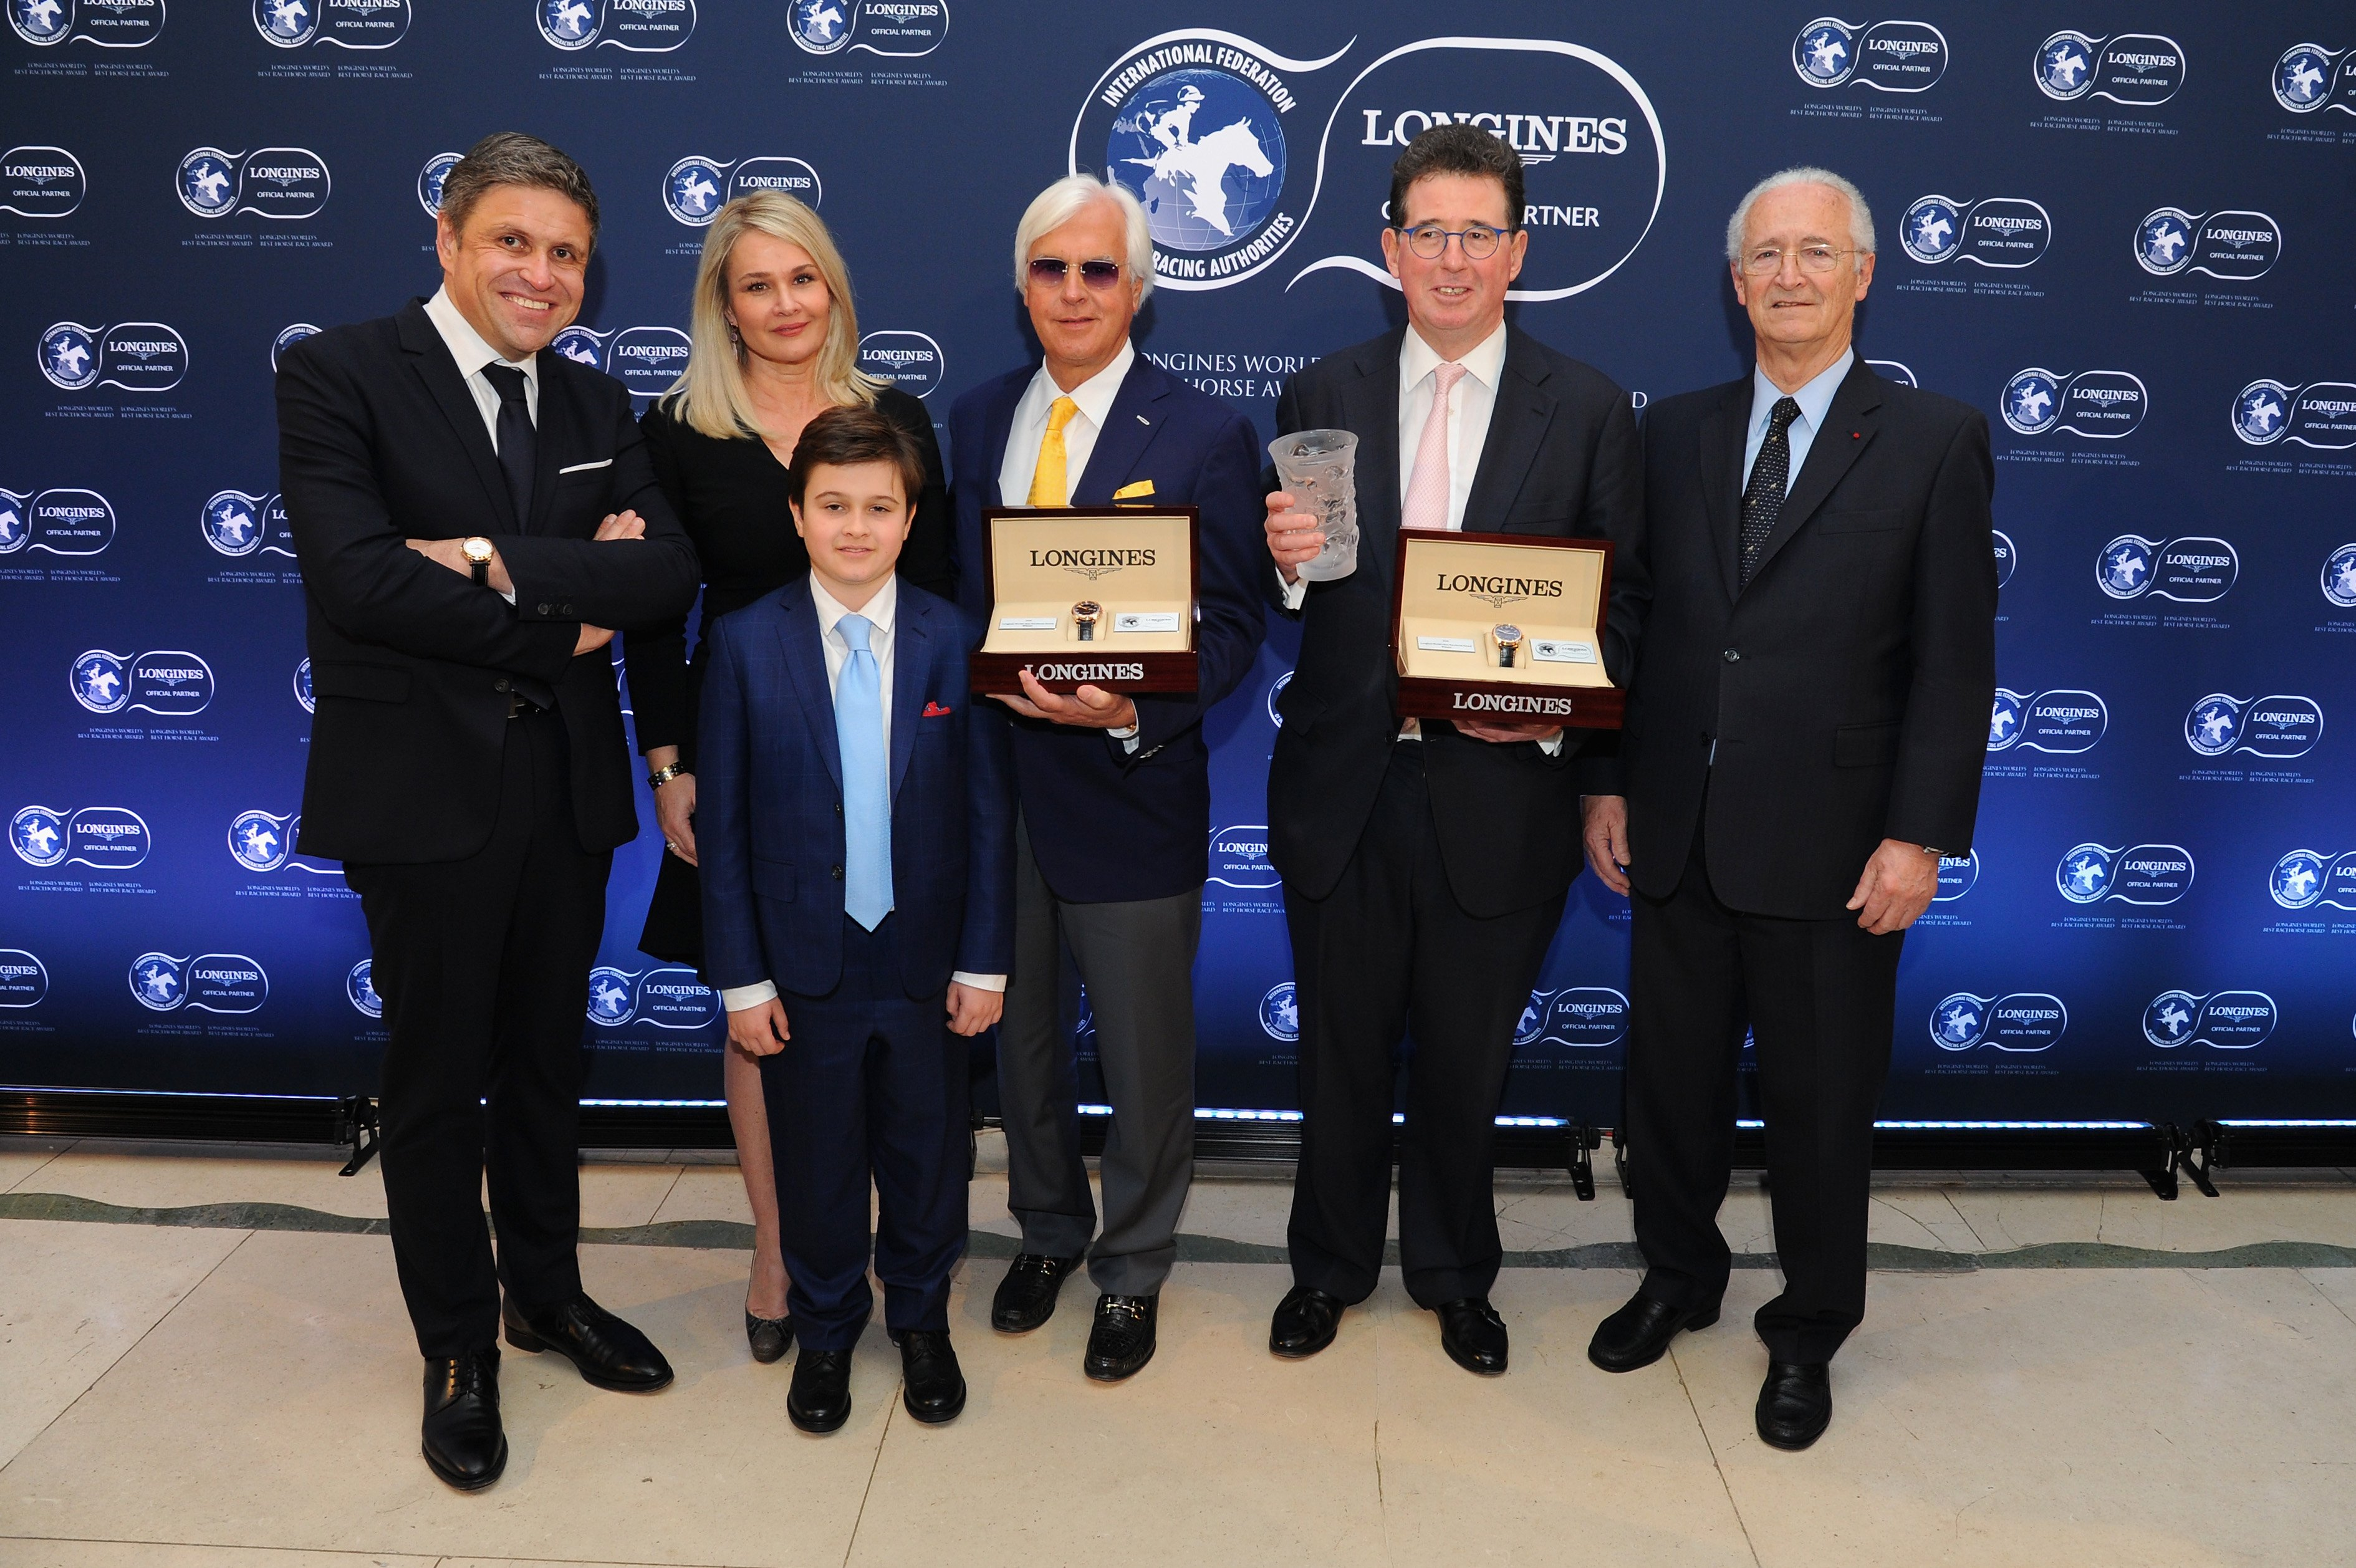 Bob Baffert (3rdR) and Lord Teddy Grimthorpe (2ndR) receive the Longines Worlds Best Horse Award from Mr. Juan-Carlos Capelli (L), Vice President of Longines and Head of International Marketing, and Mr. Louis Romanet (R), IFHA Chairman with Jill Baffert (2ndL) and Bode Baffert (3rdL)